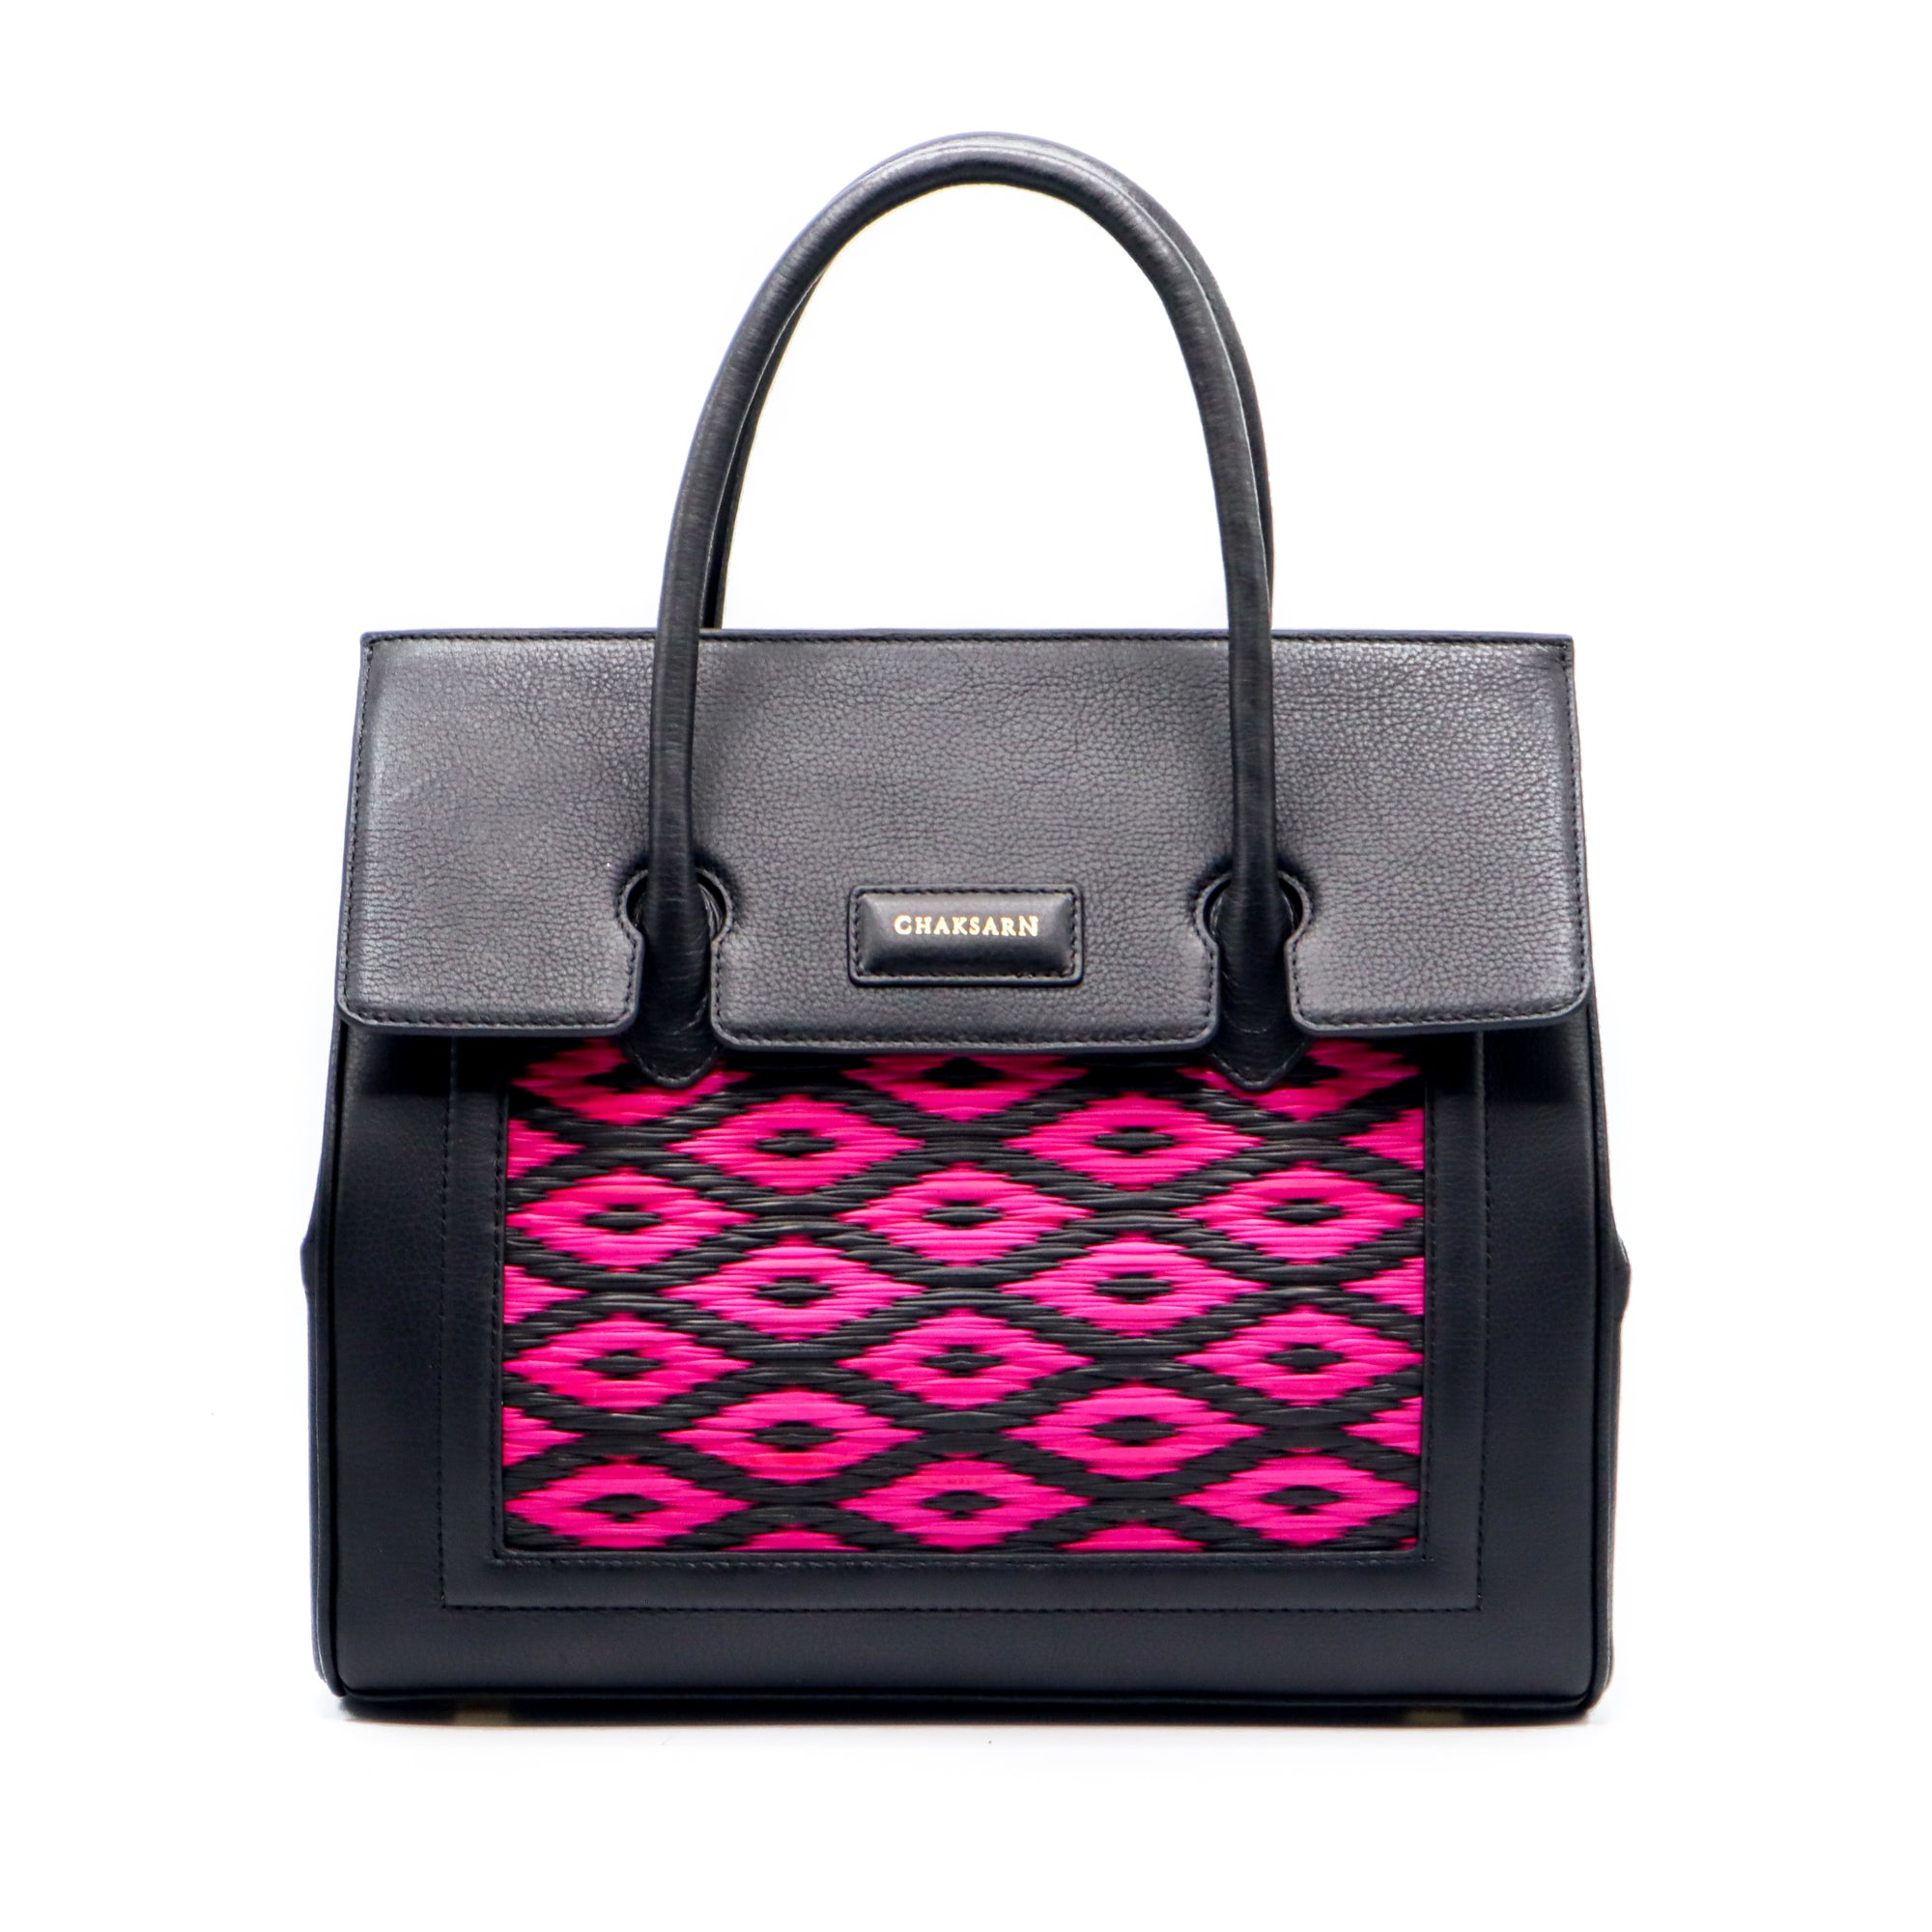 Lady - Black & Pink (Diamond)